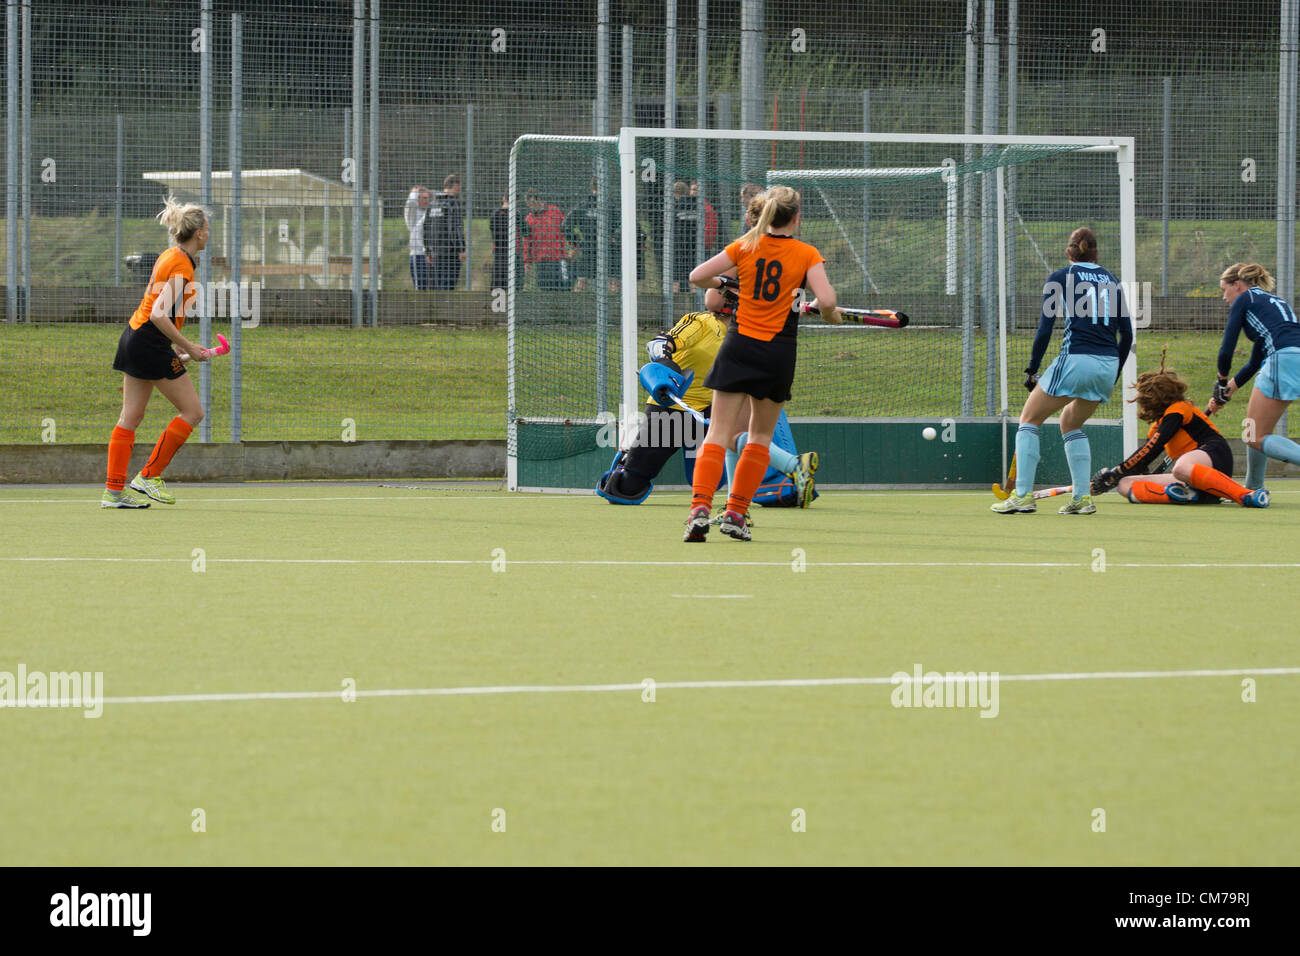 Leicester, UK. 20th October, 2012. Katie Long scoring her third goal (on ground at right) for Leicester HC in their - Stock Image